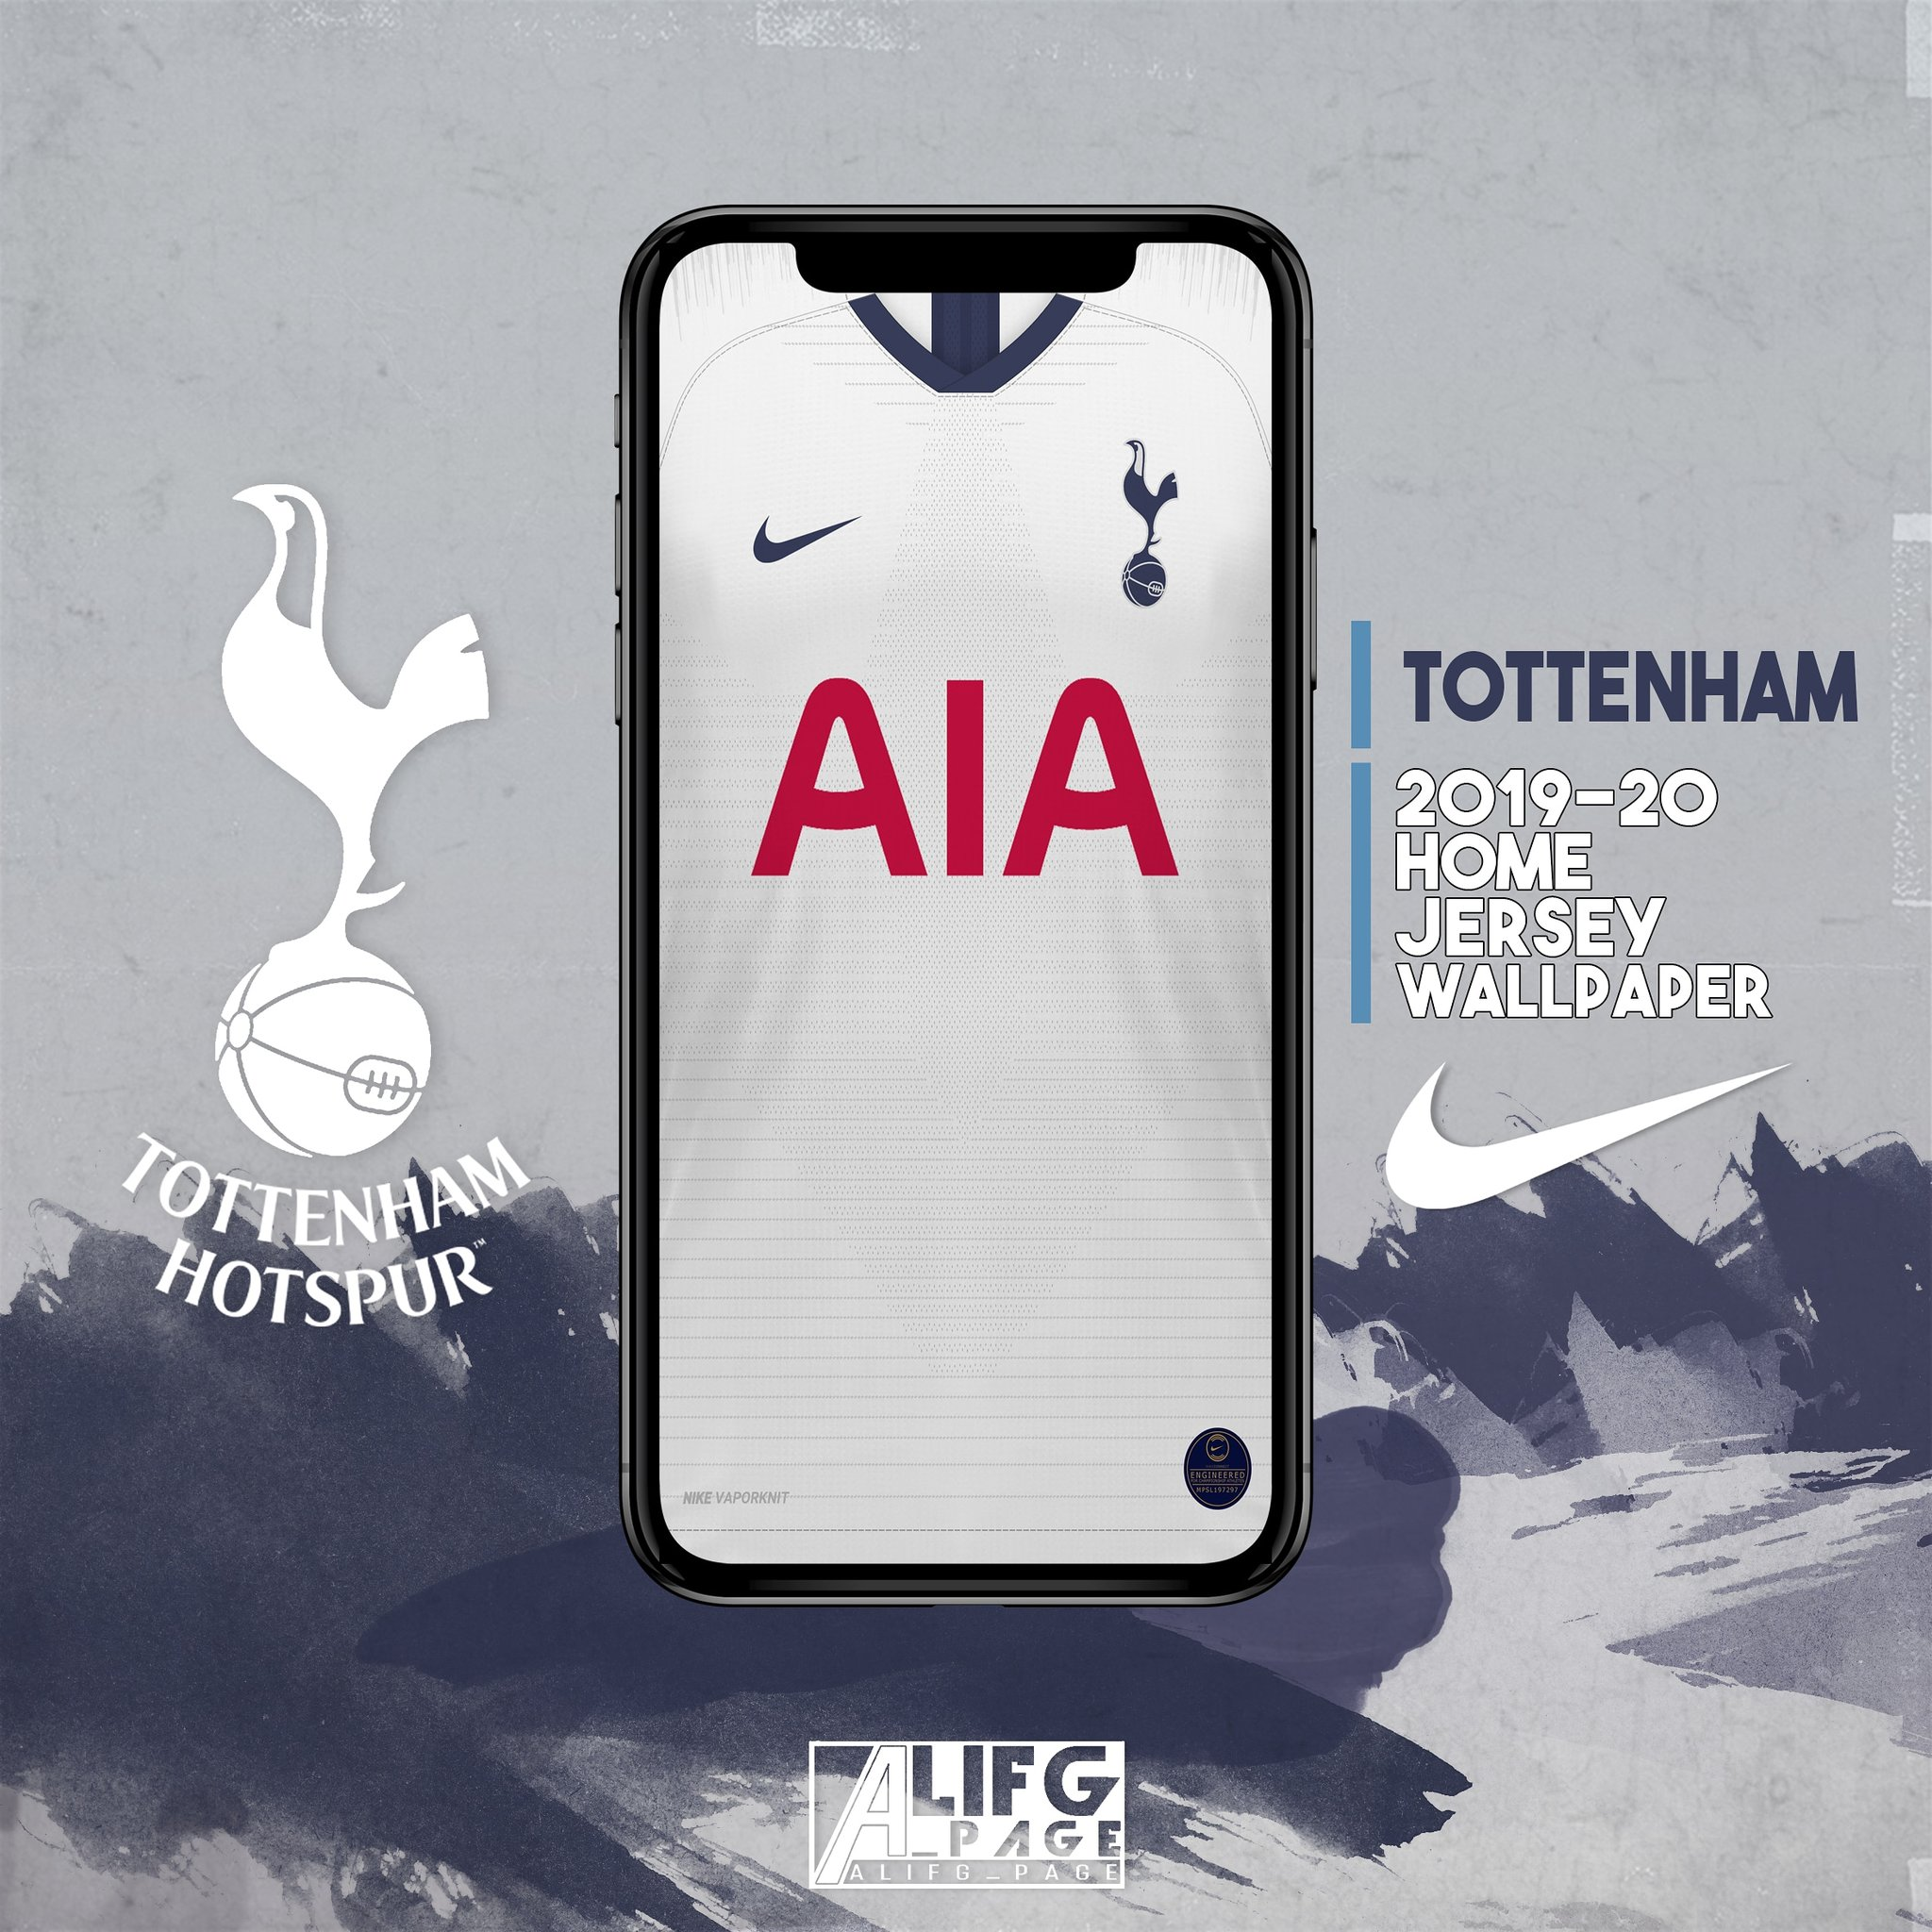 Alifg Page On Twitter Spursofficial 2019 20 Home Jersey Wallpaper Nikefootball